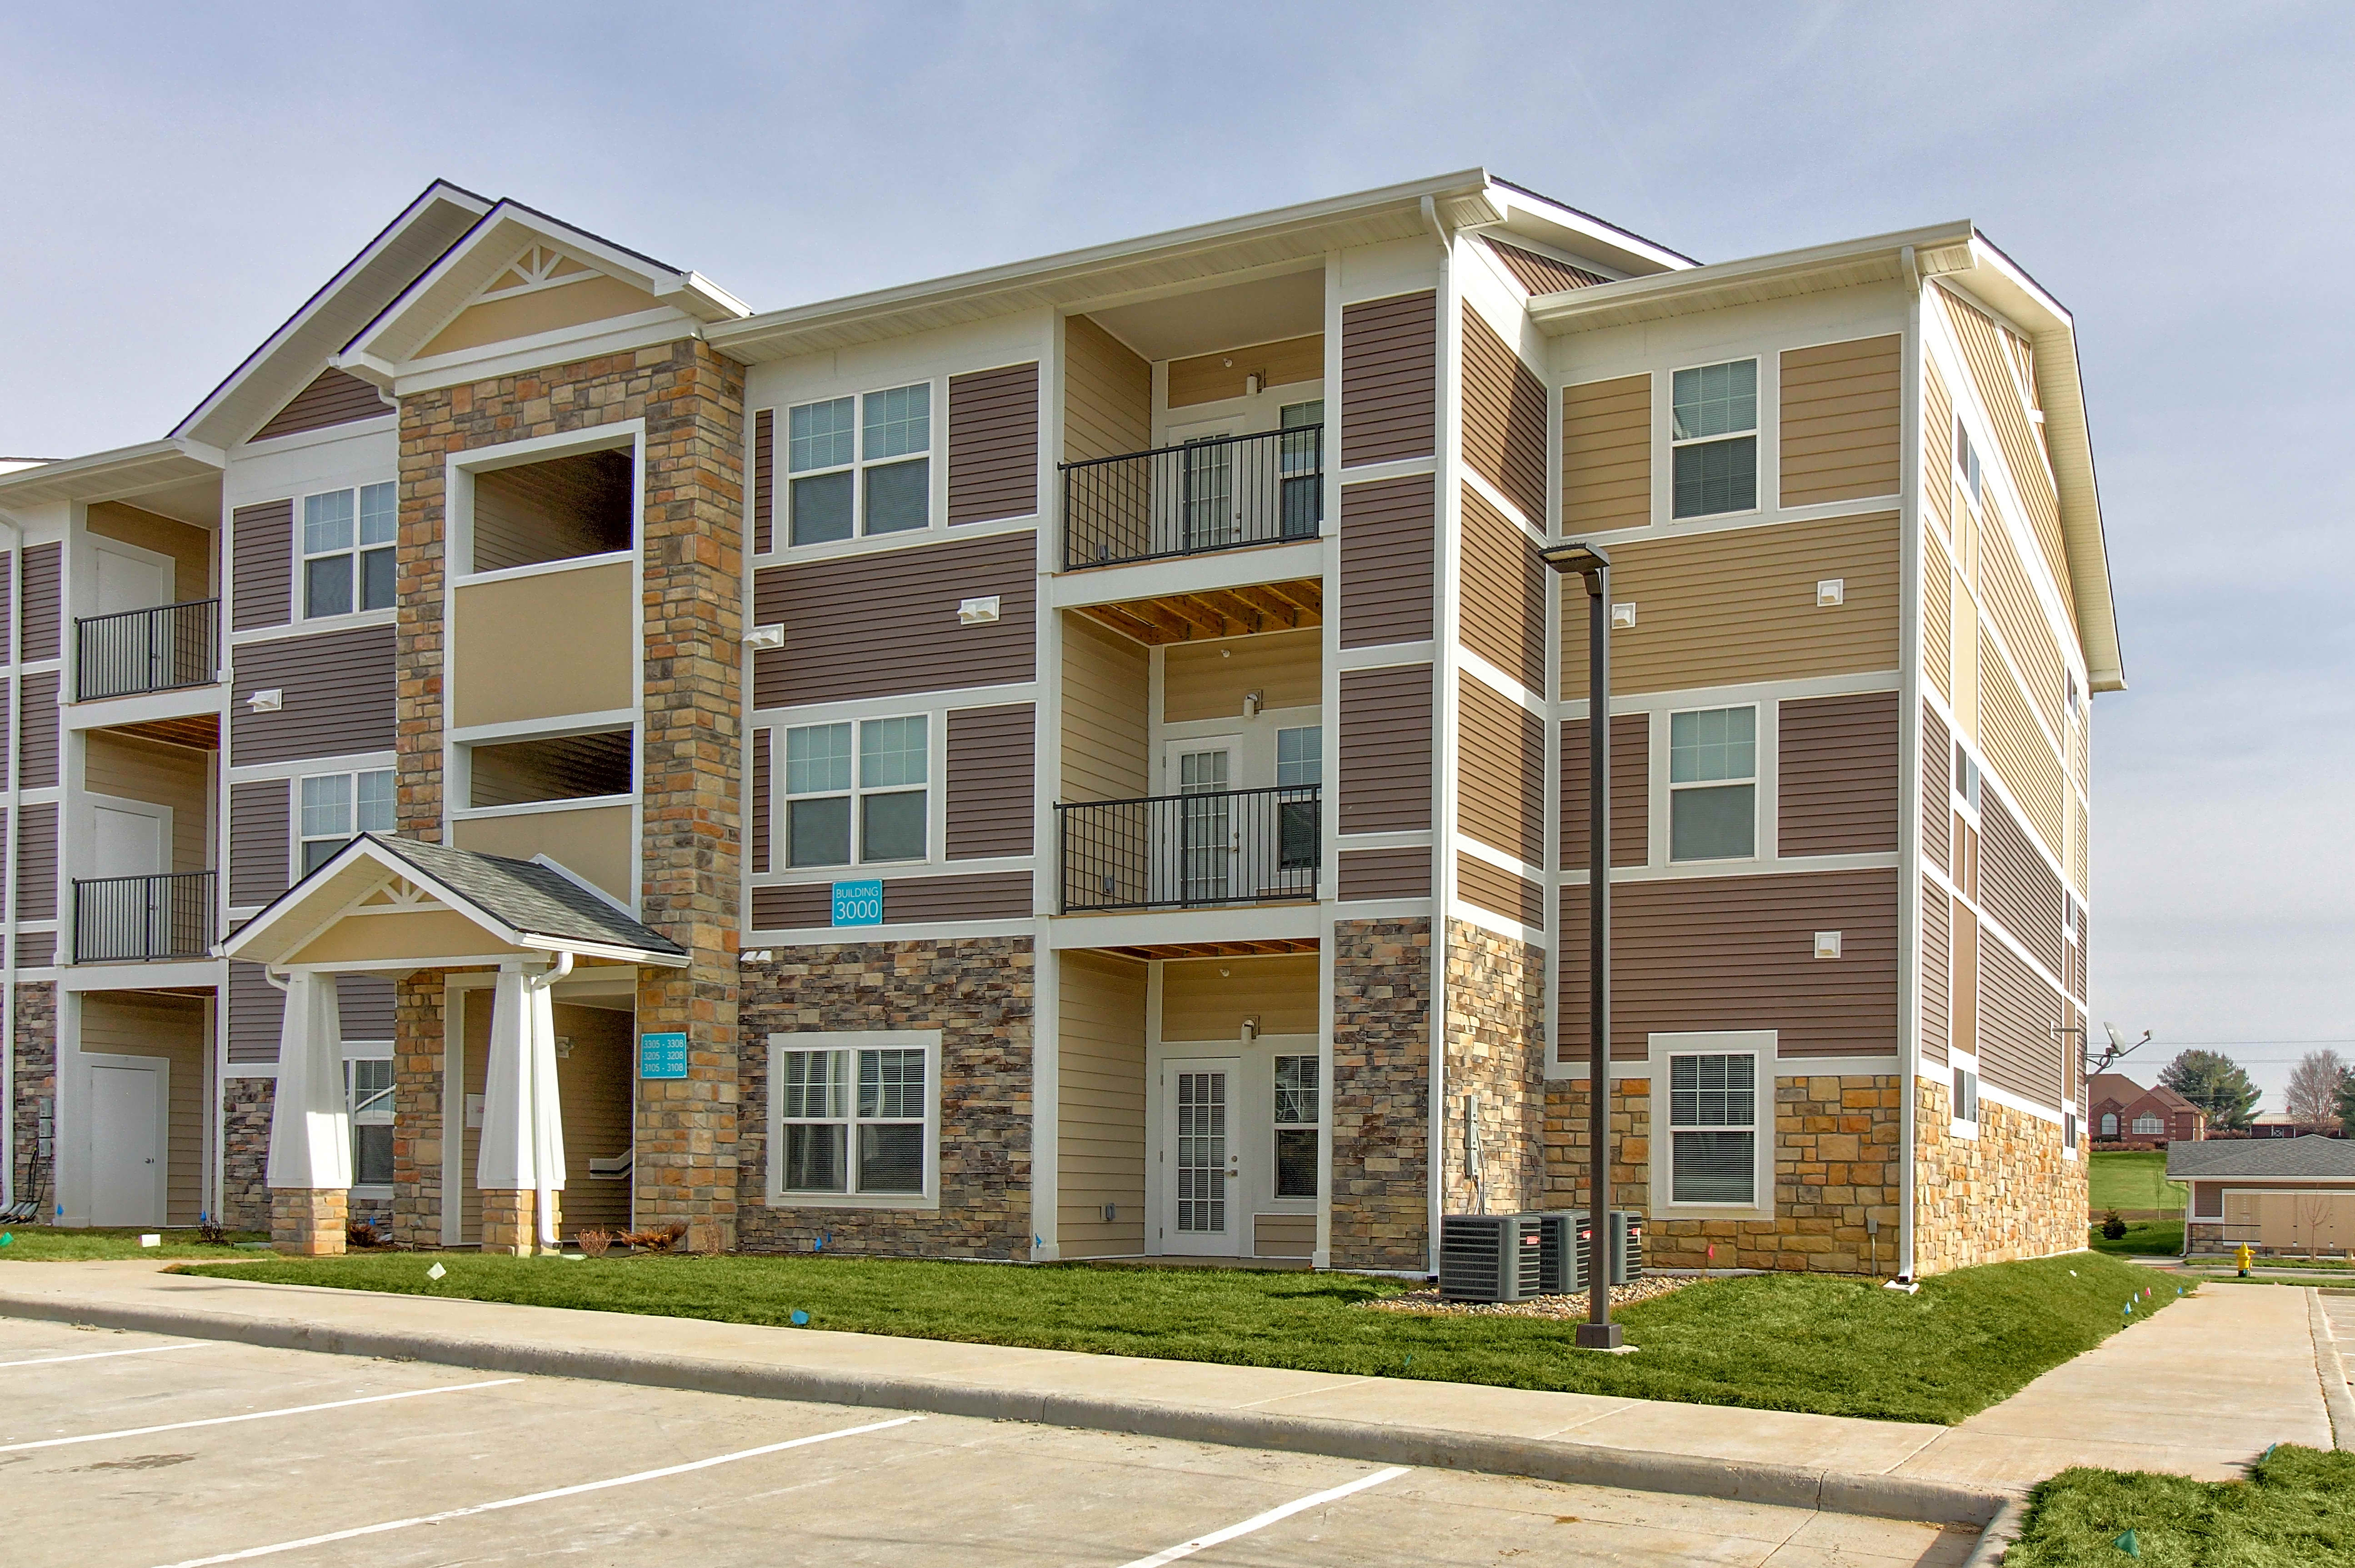 Apartments Near Aveda Institute-Des Moines Lift at Jordan Creek for Aveda Institute-Des Moines Students in West Des Moines, IA